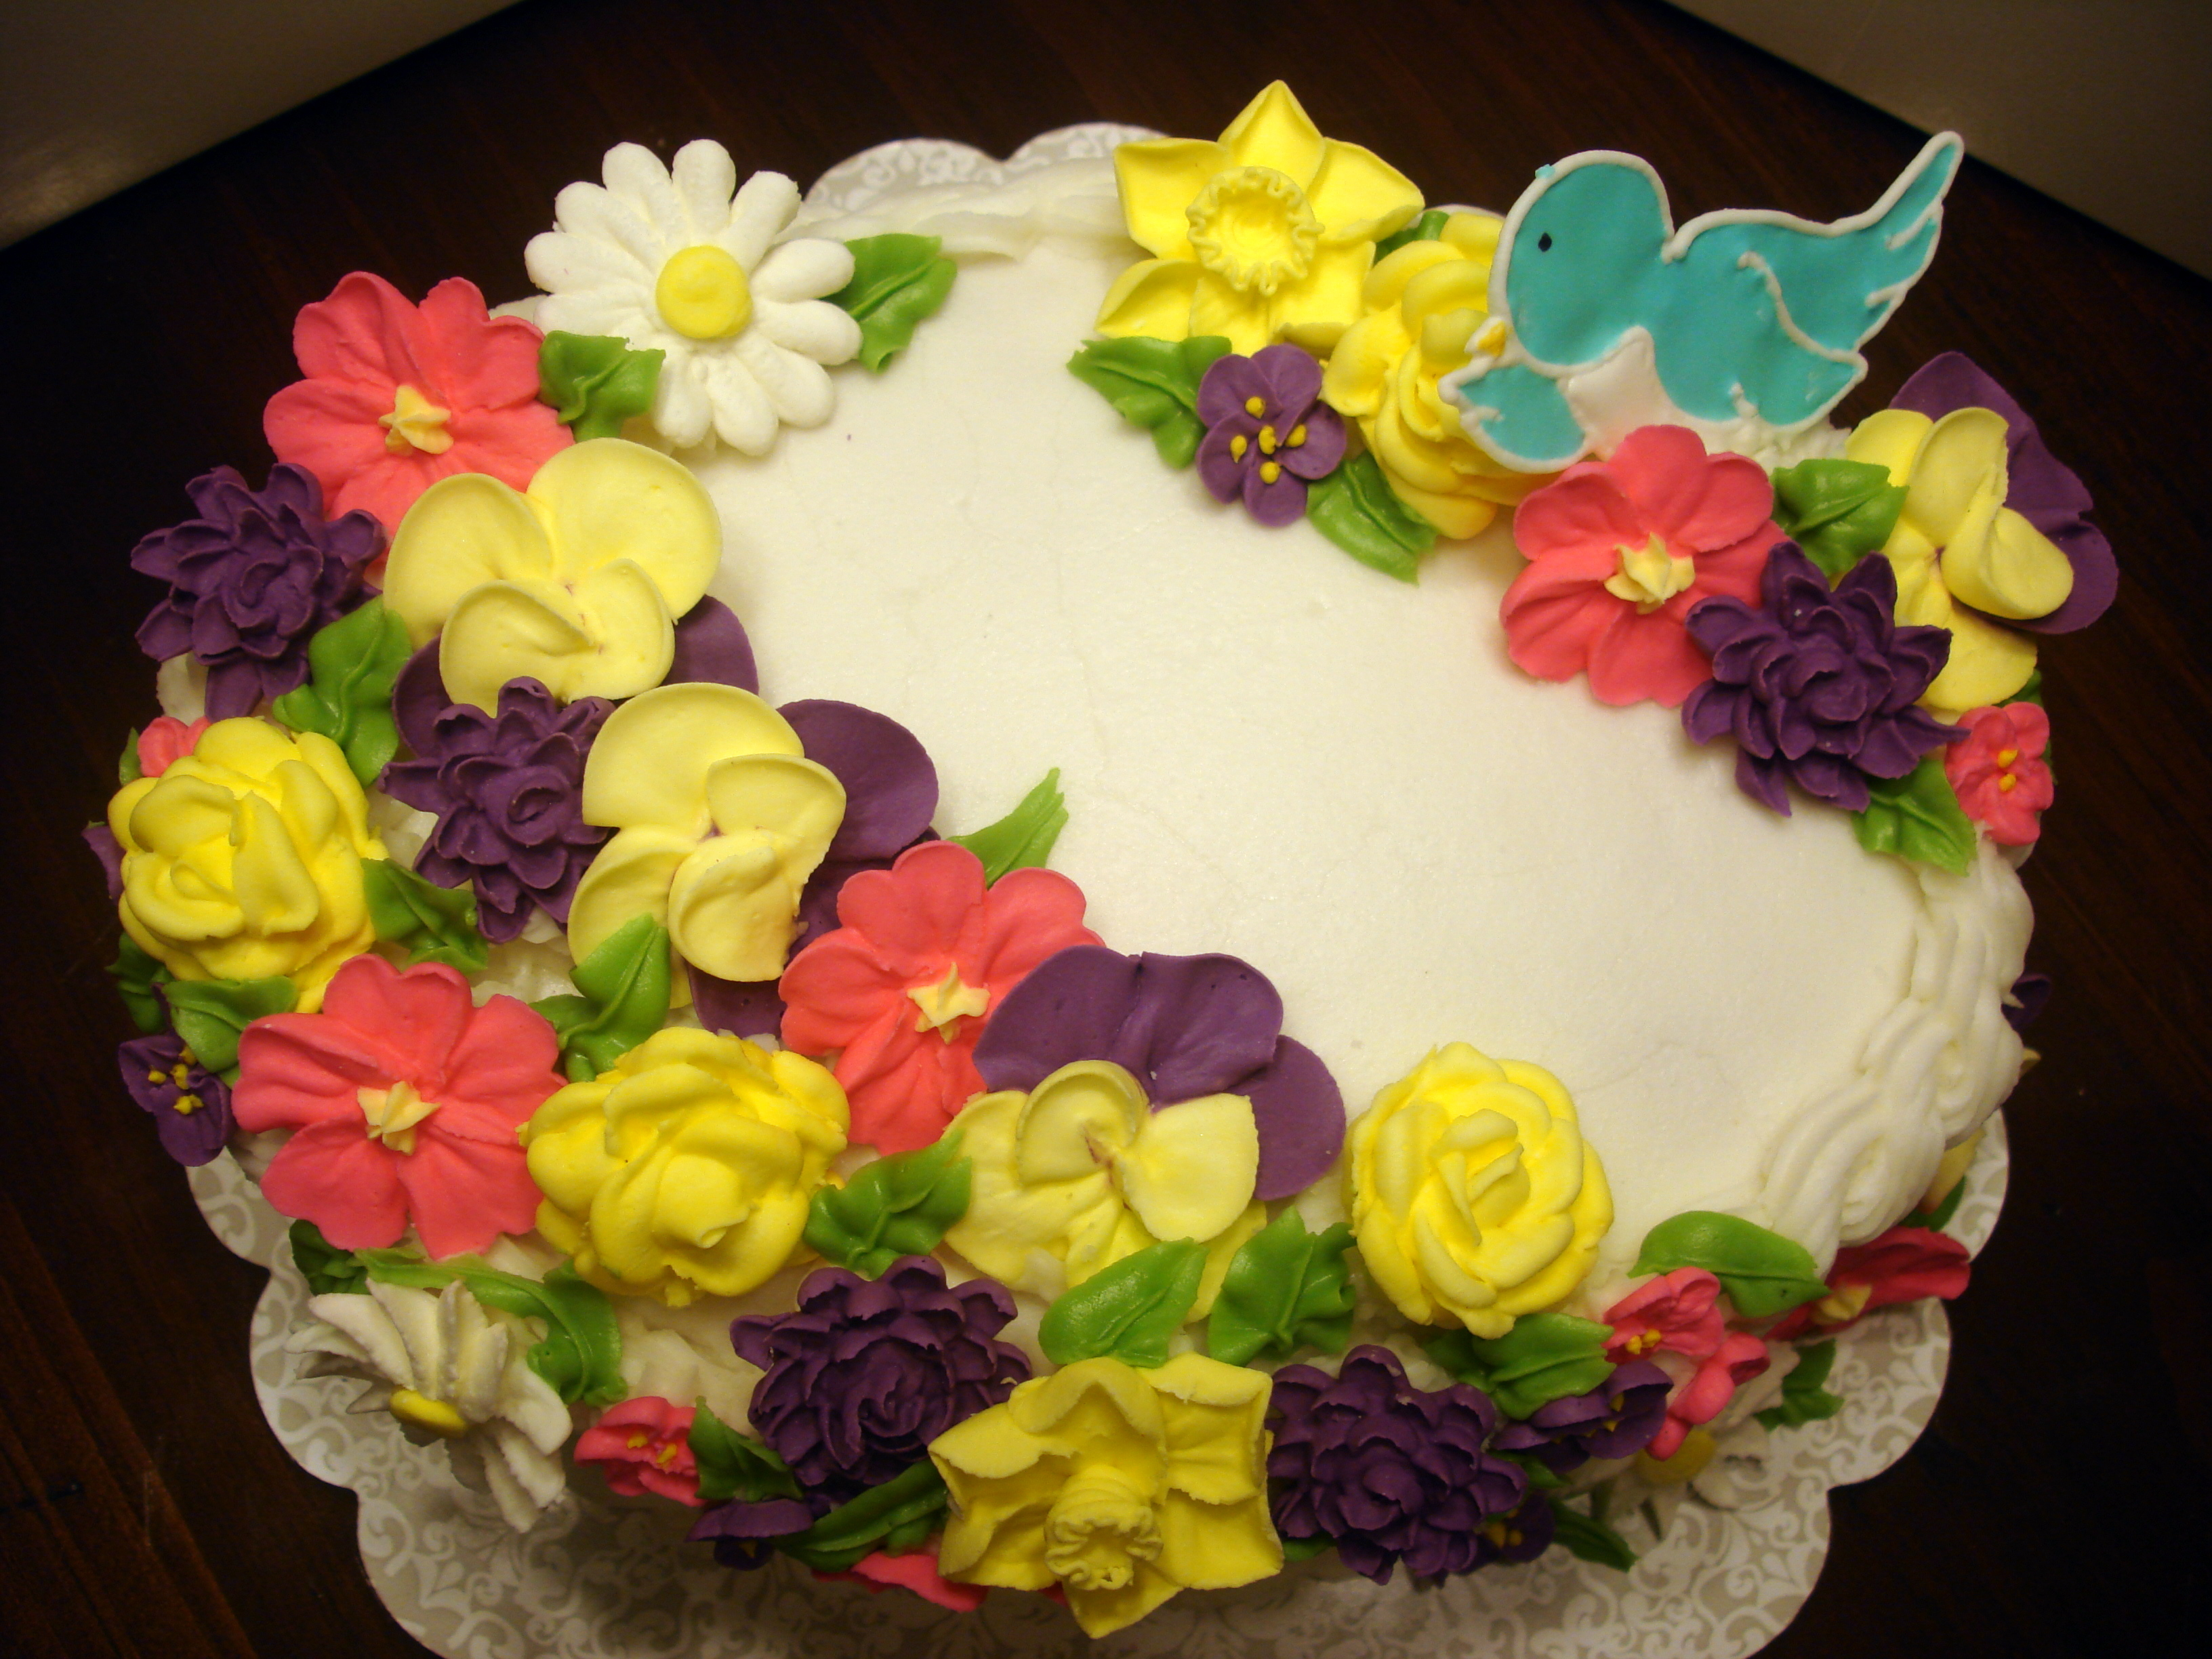 How To Make A Basket Of Flowers Cake : Flower basket cake ms tapioca